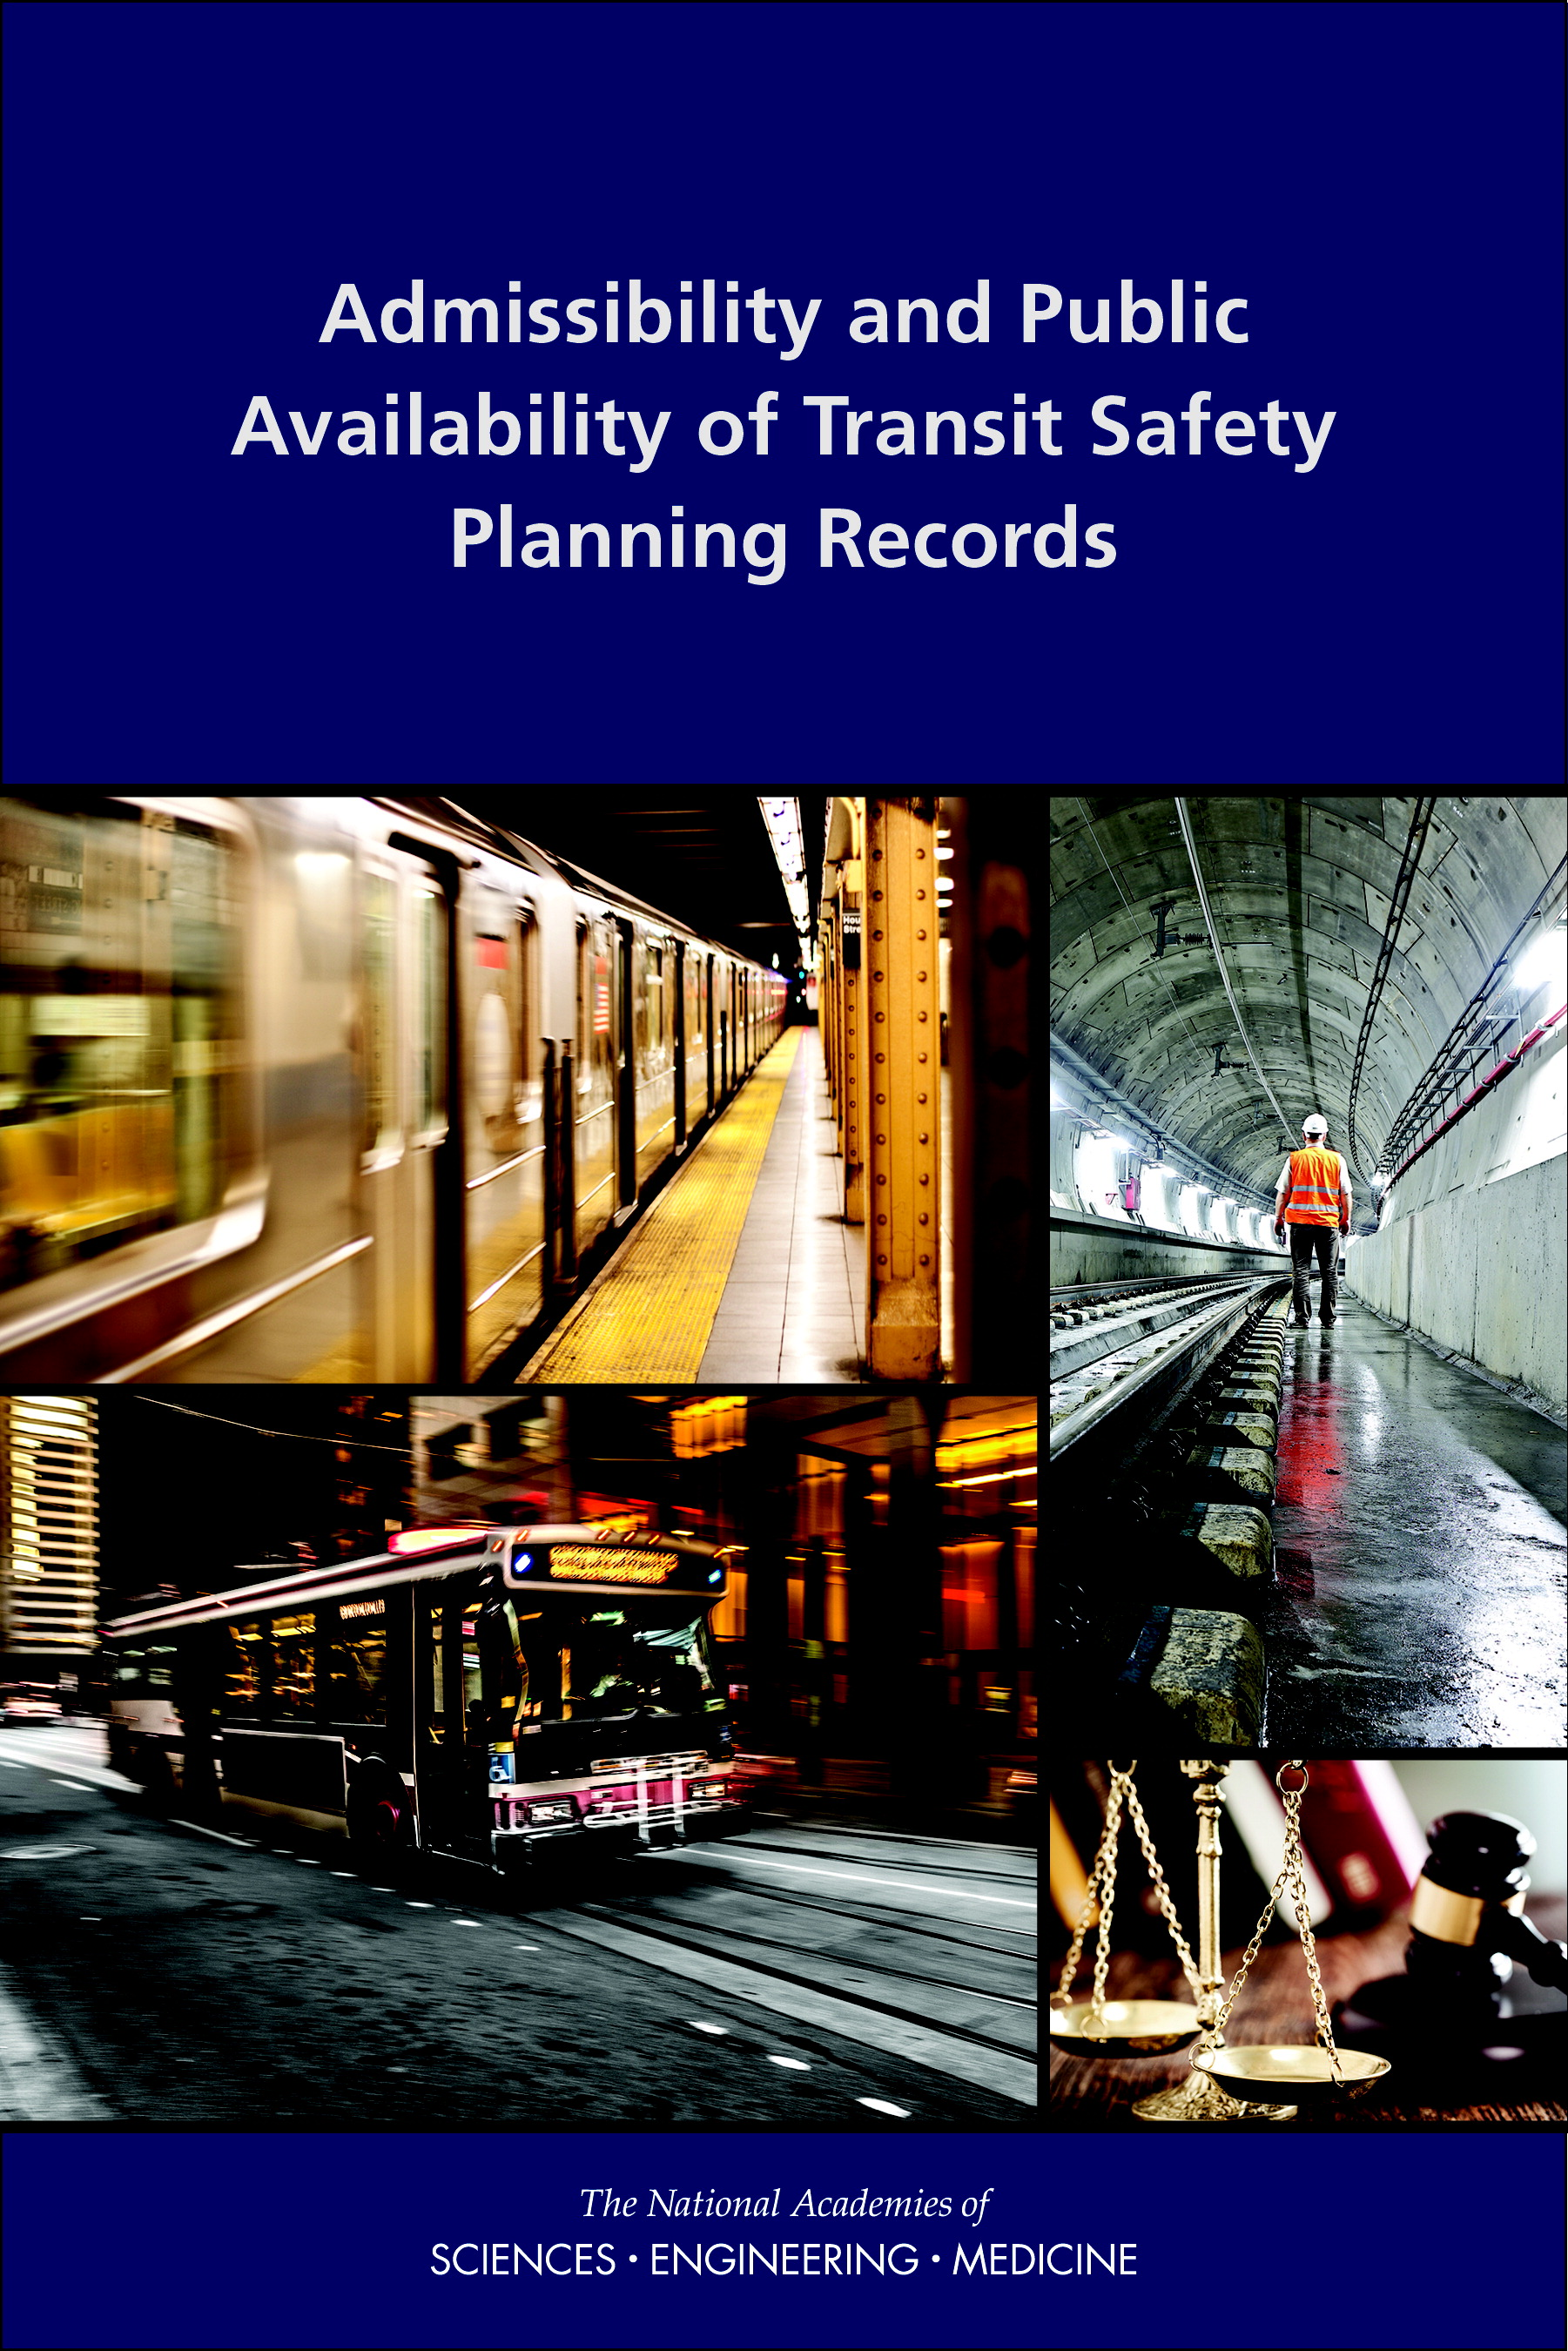 Admissibility-Availability of Transit Data